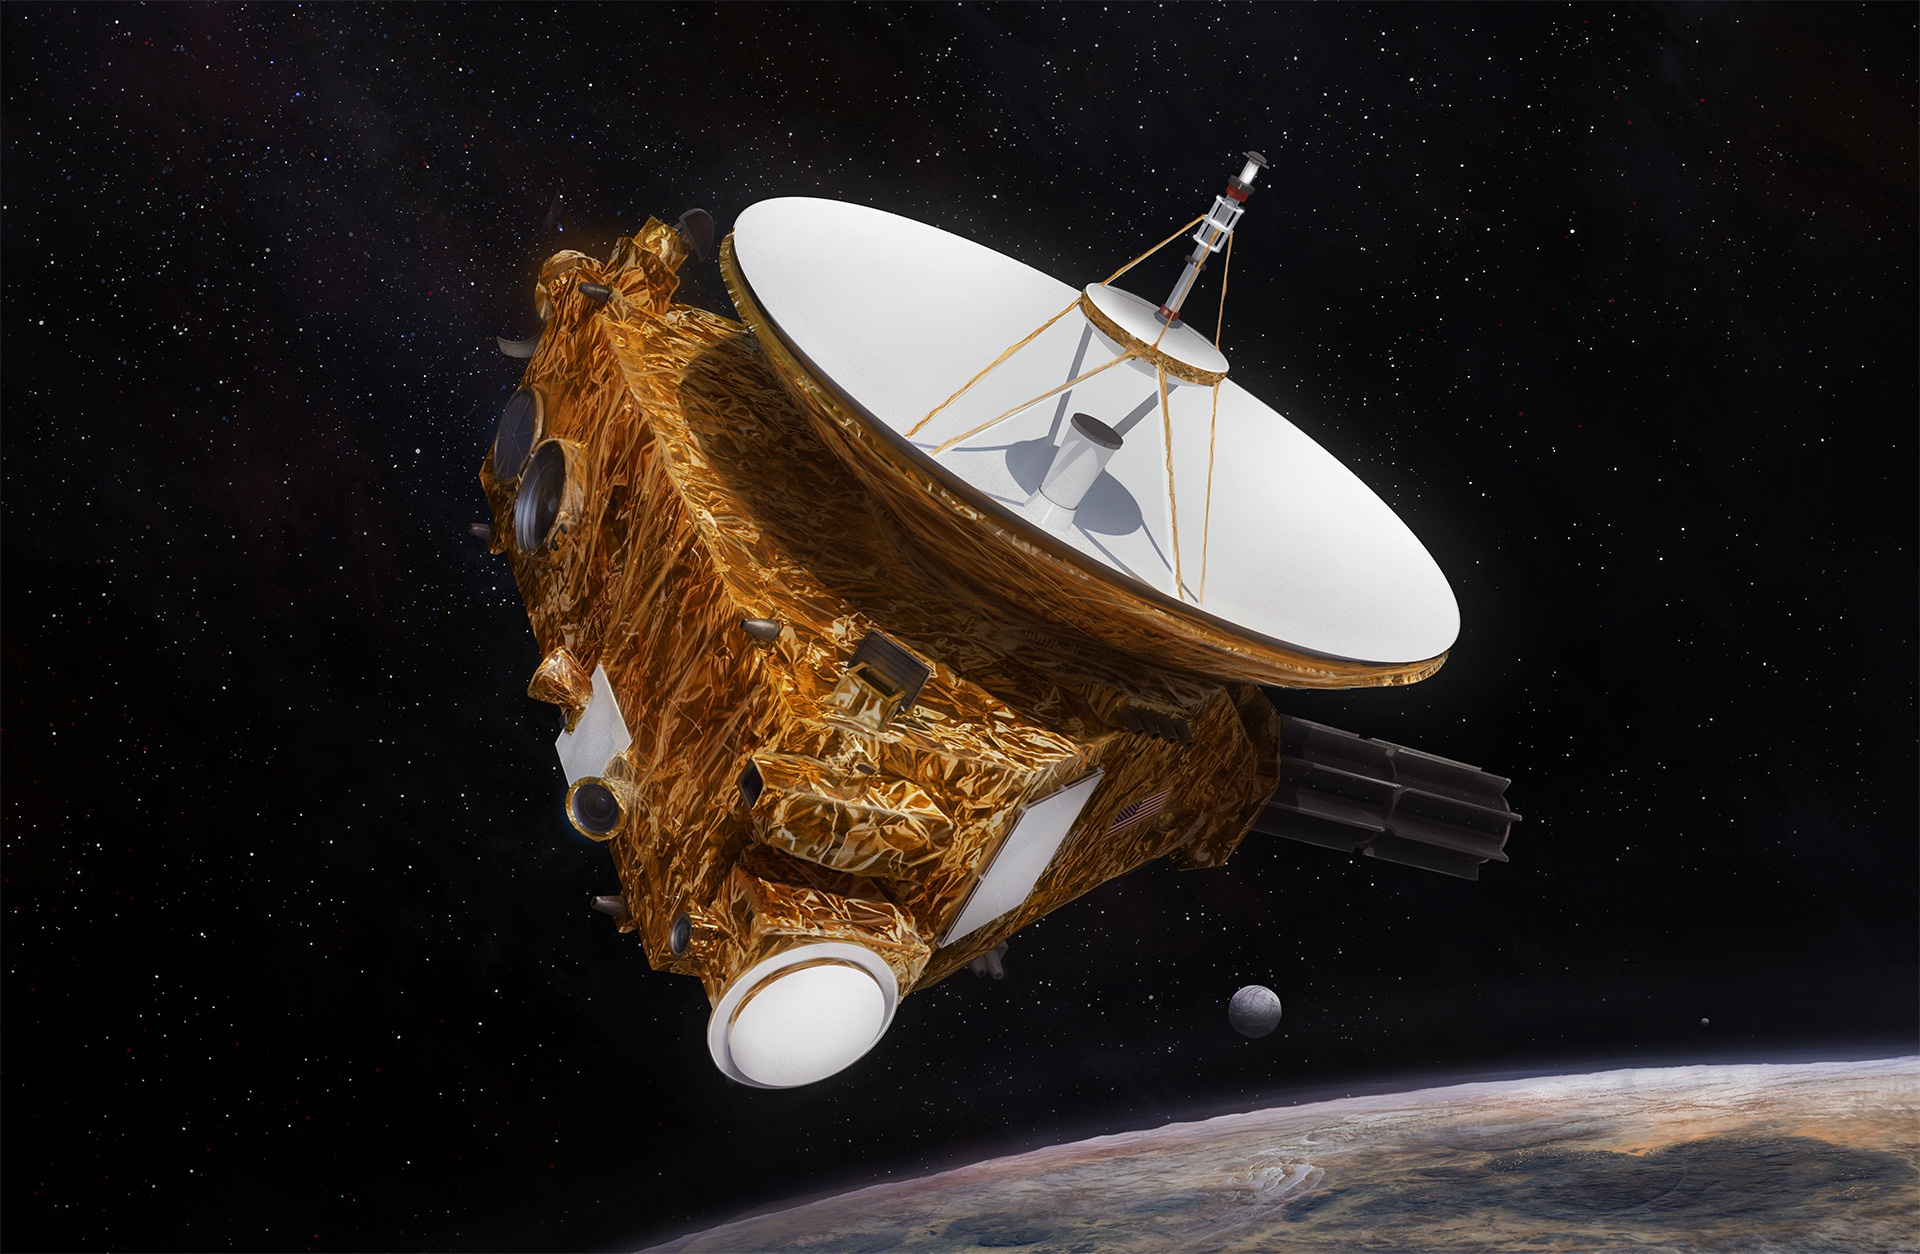 space probe to pluto - HD 1920×1254